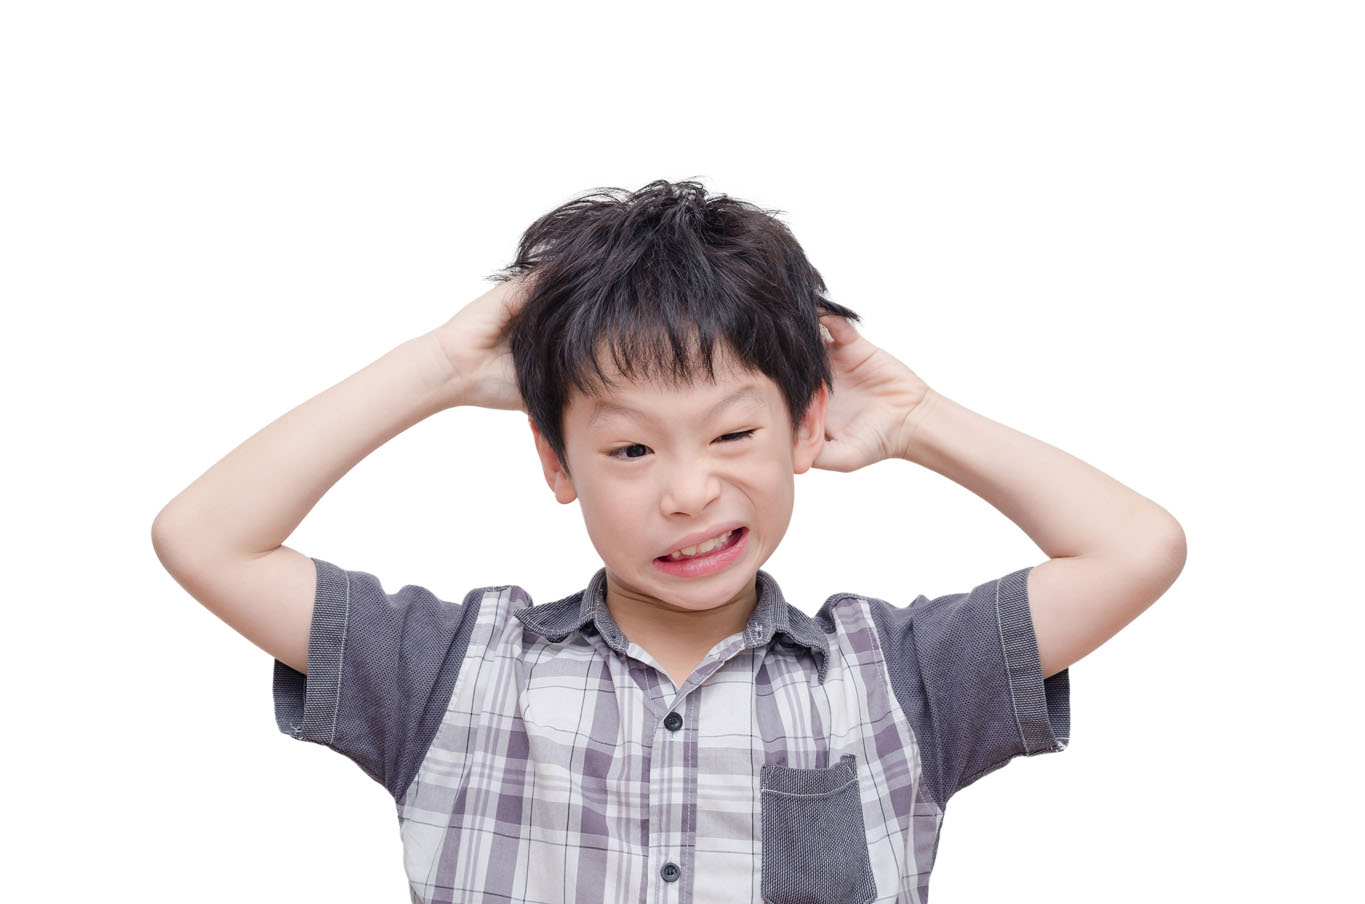 Young boy scratching in his hair and looking uncomfortable